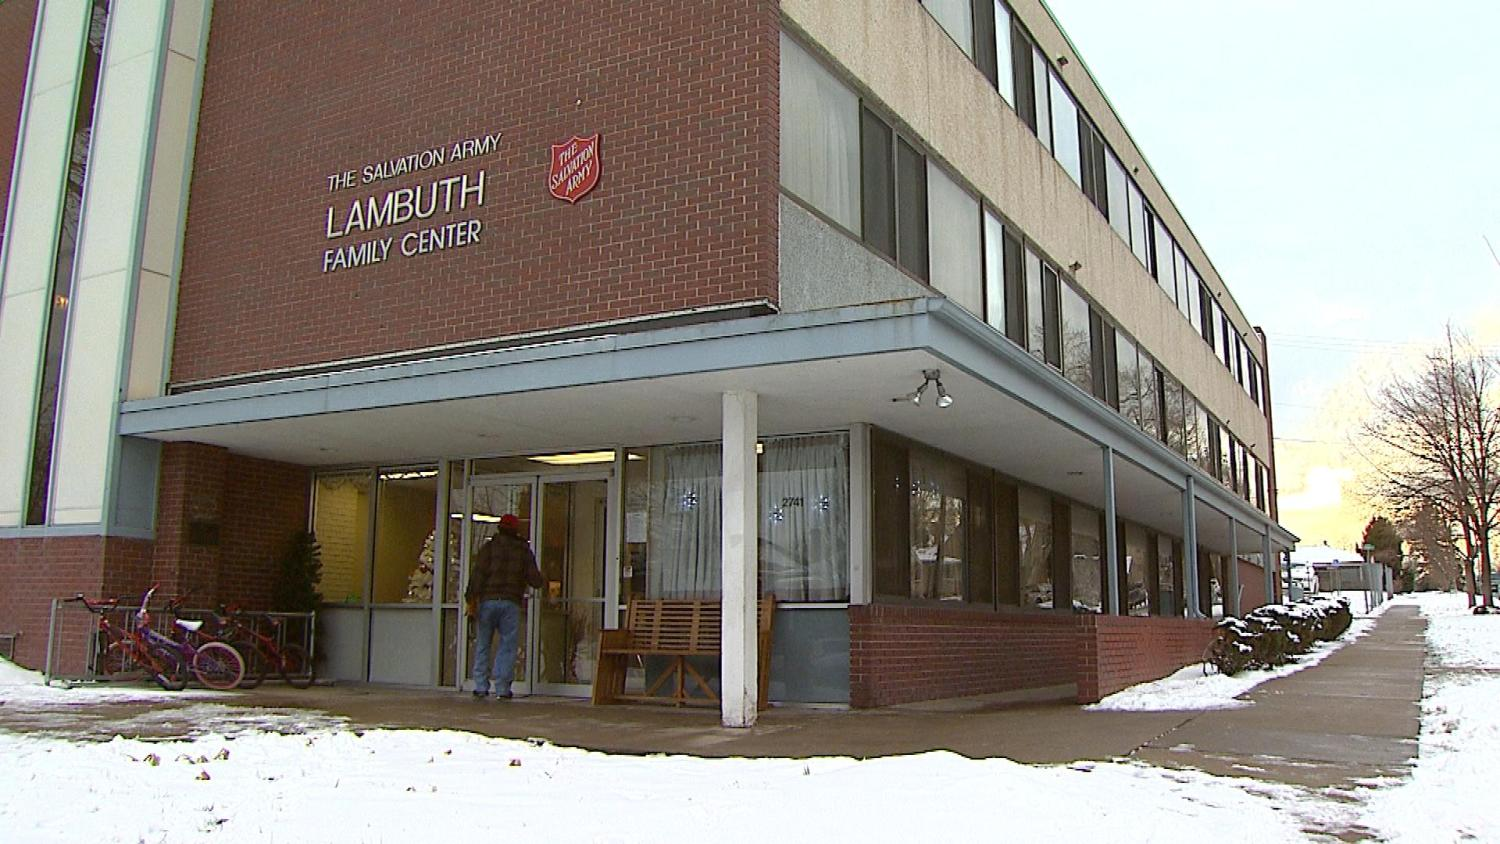 The Salvation Army Lambuth Family Center